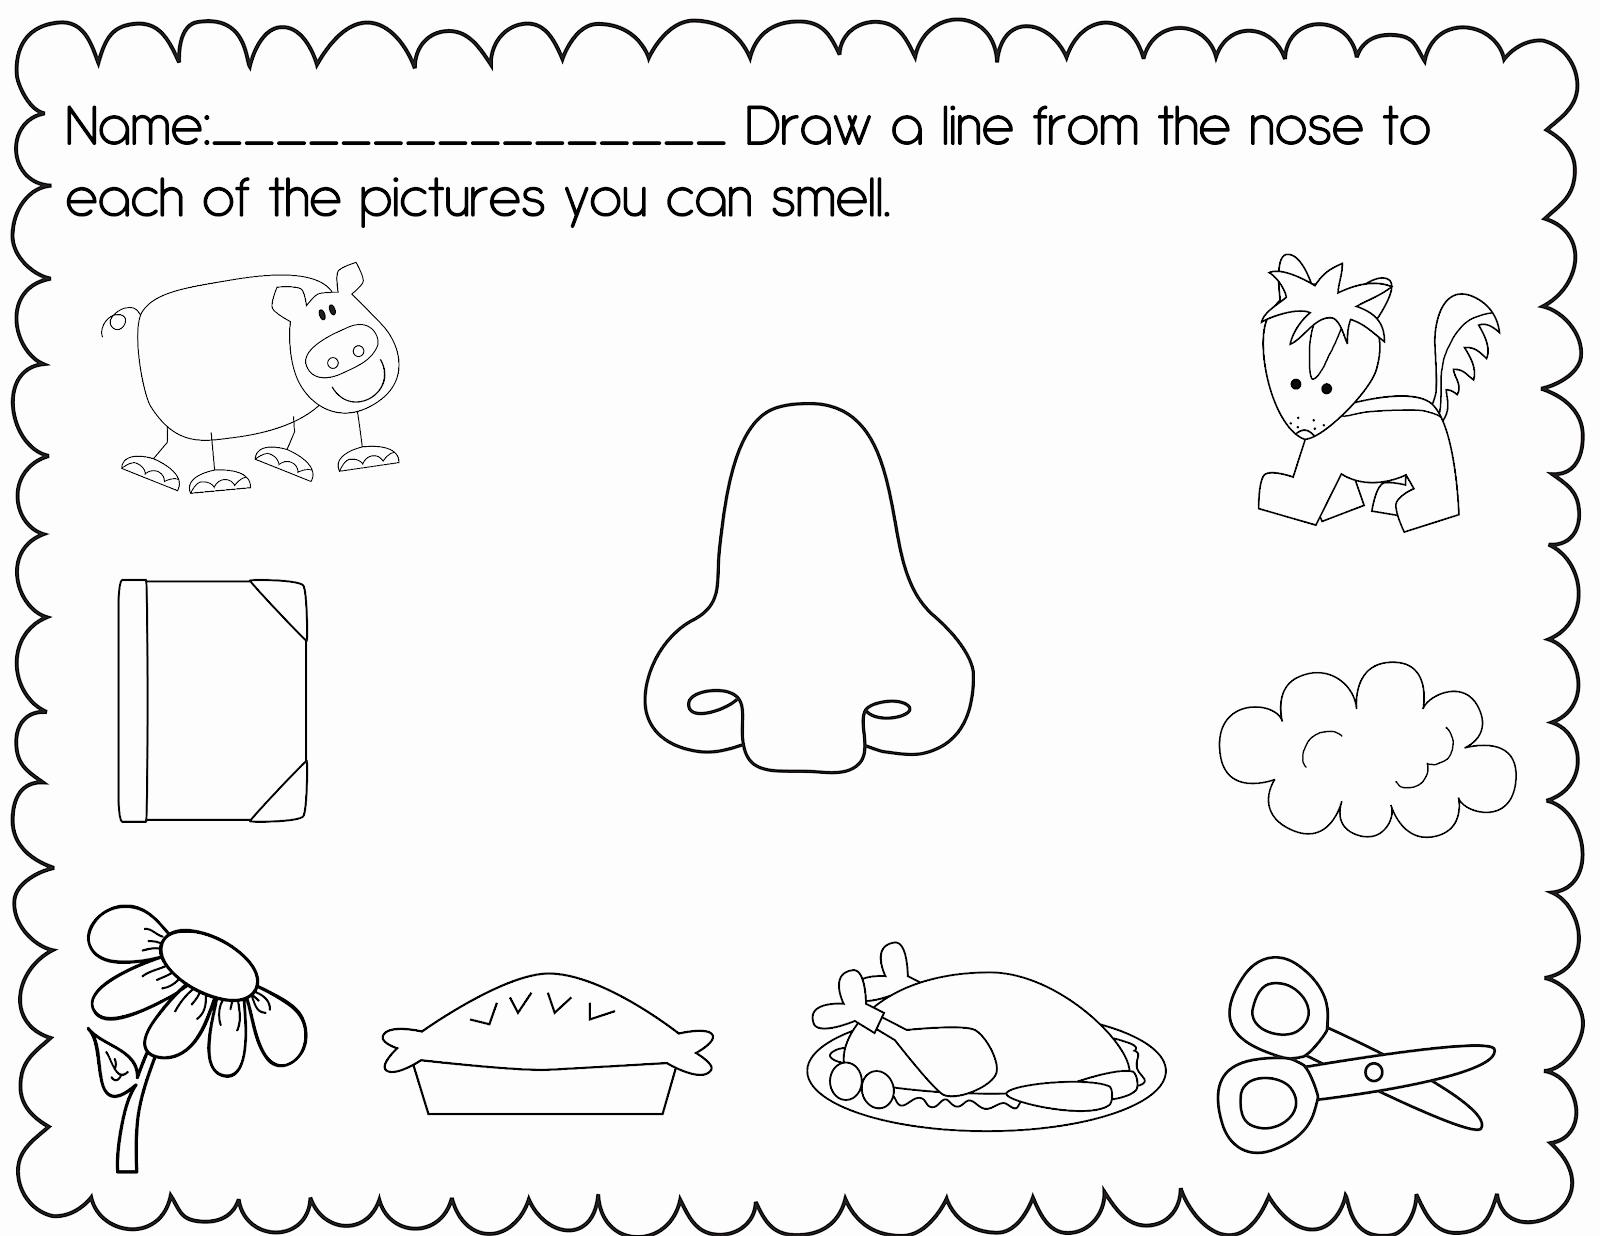 5 Senses Worksheets for Kindergarten Inspirational 8 Best Of Preschool Science Printables Pre K Five